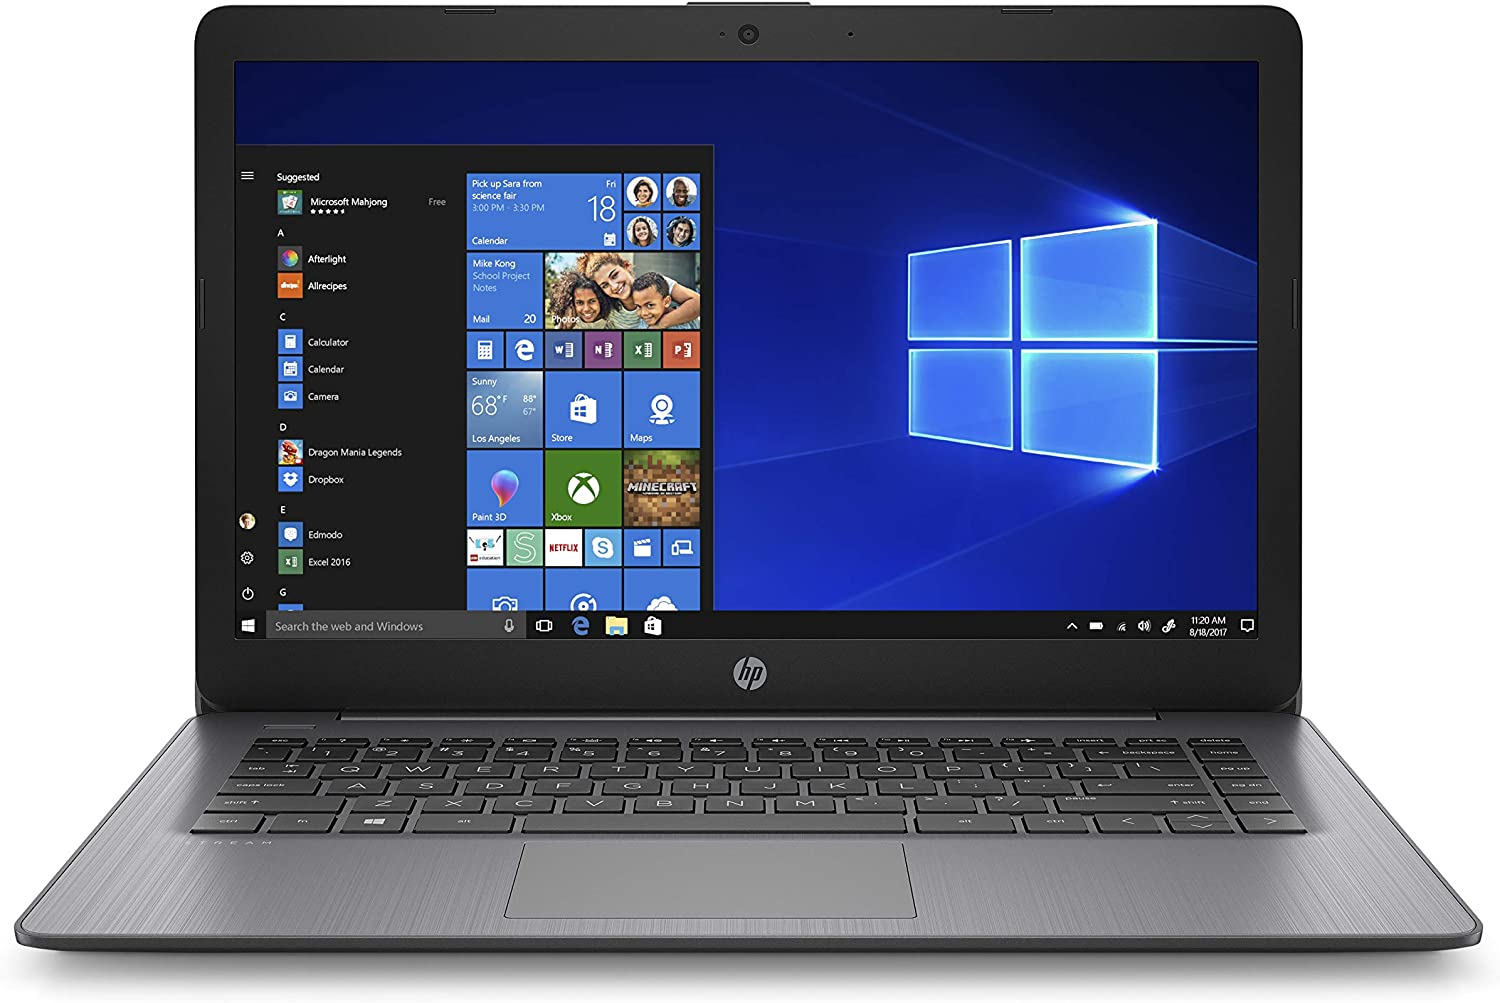 HP Stream 14-inch Laptop, Intel Celeron N4000, 4 GB RAM, 64 GB eMMC, Windows 10 Home in S Mode with Office 365 Personal for 1 Year (14-cb186nr, Brilliant Black) (9MV74UA#ABA)